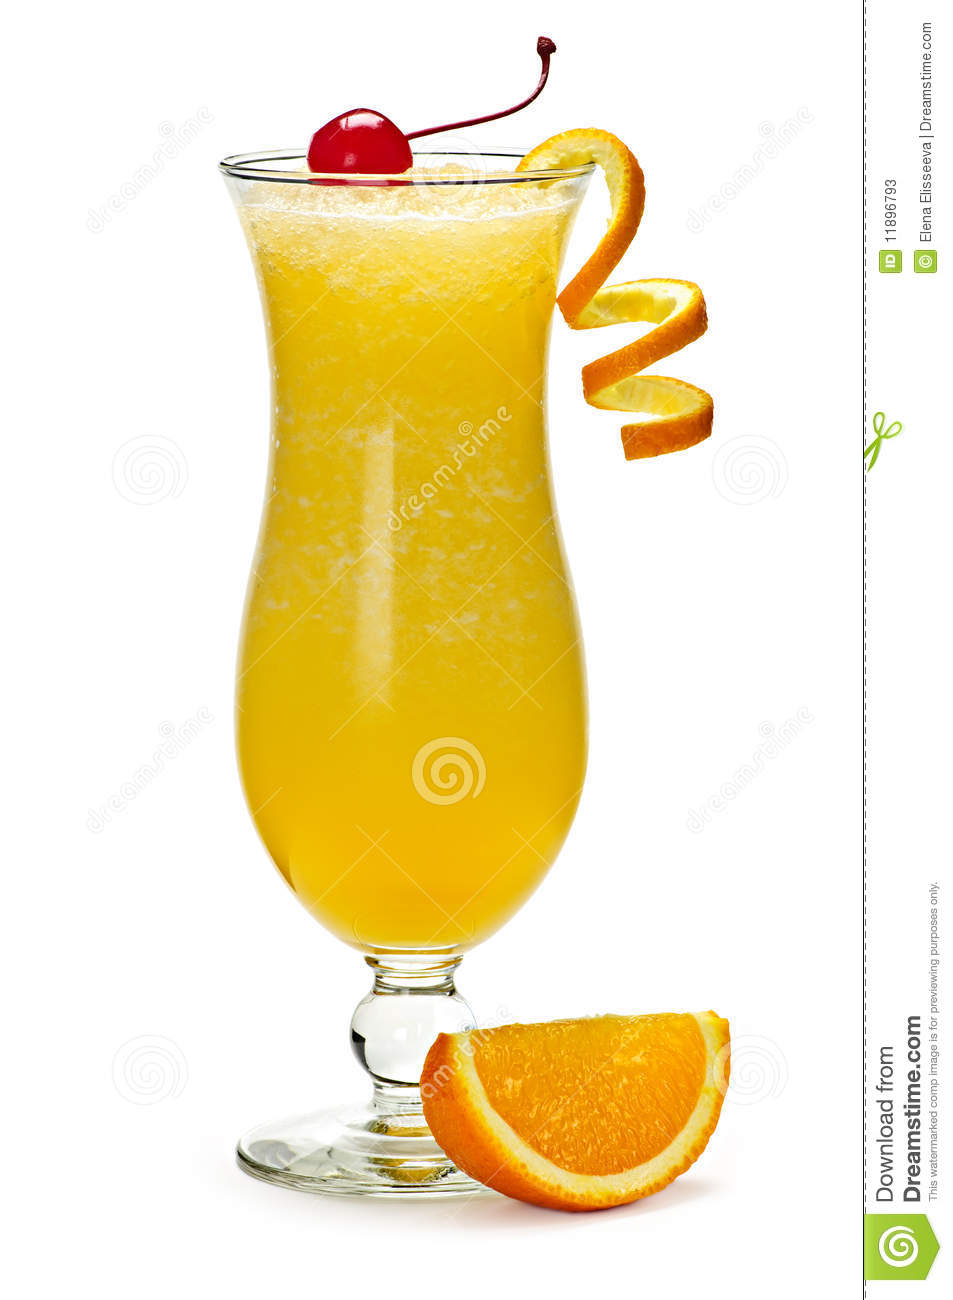 Frozen orange drink stock photos image 11896793 for Cocktail orange